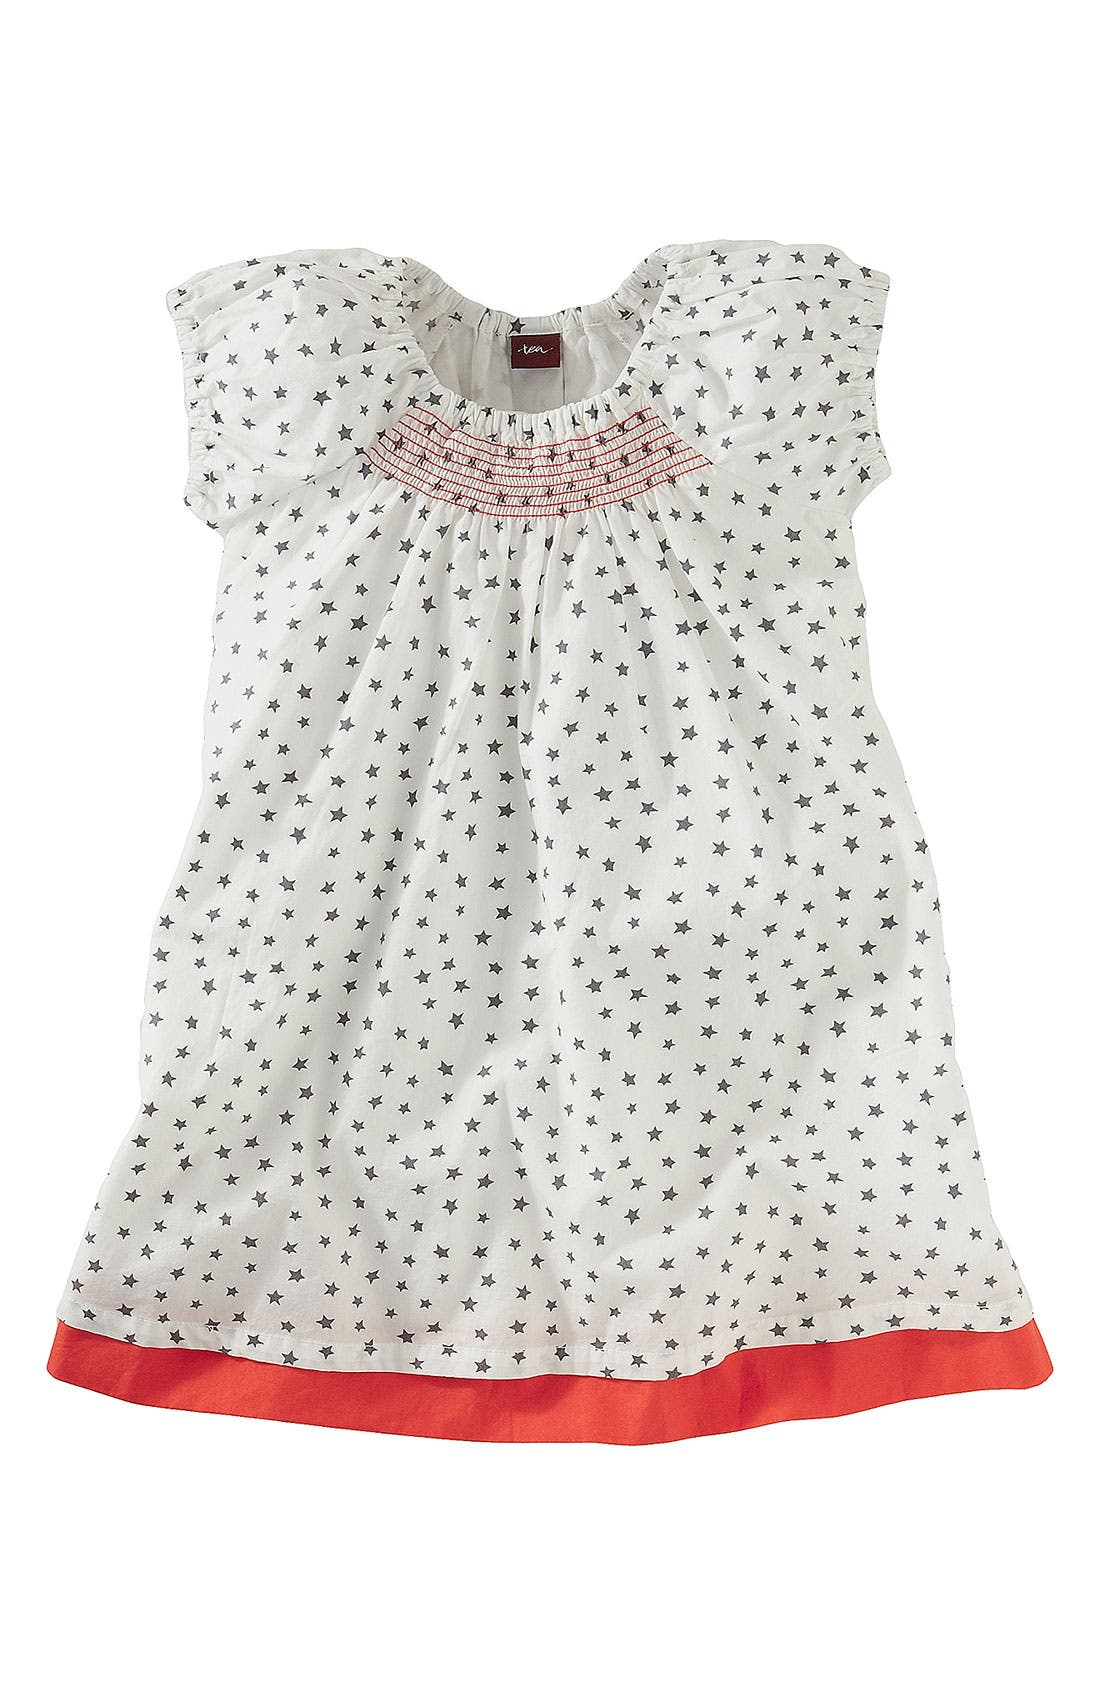 Alternate Image 1 Selected - Tea Collection Smocked Dress (Toddler)